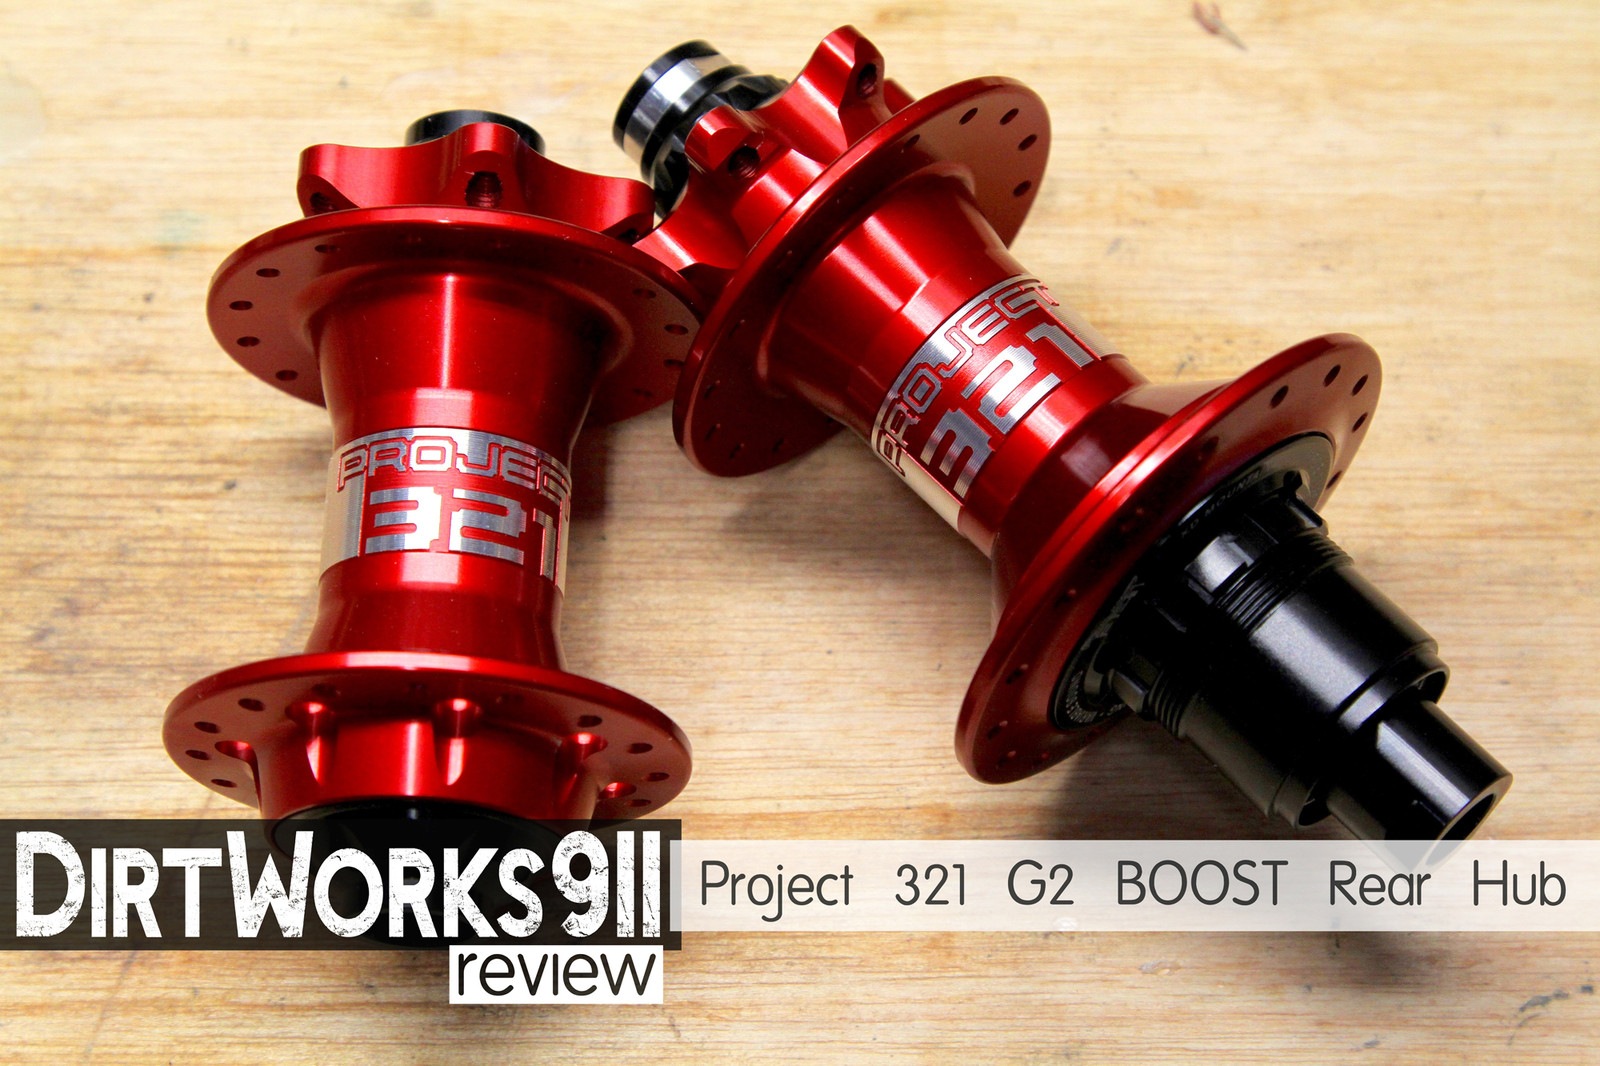 Project 321 G2 BOOST Rear Hub